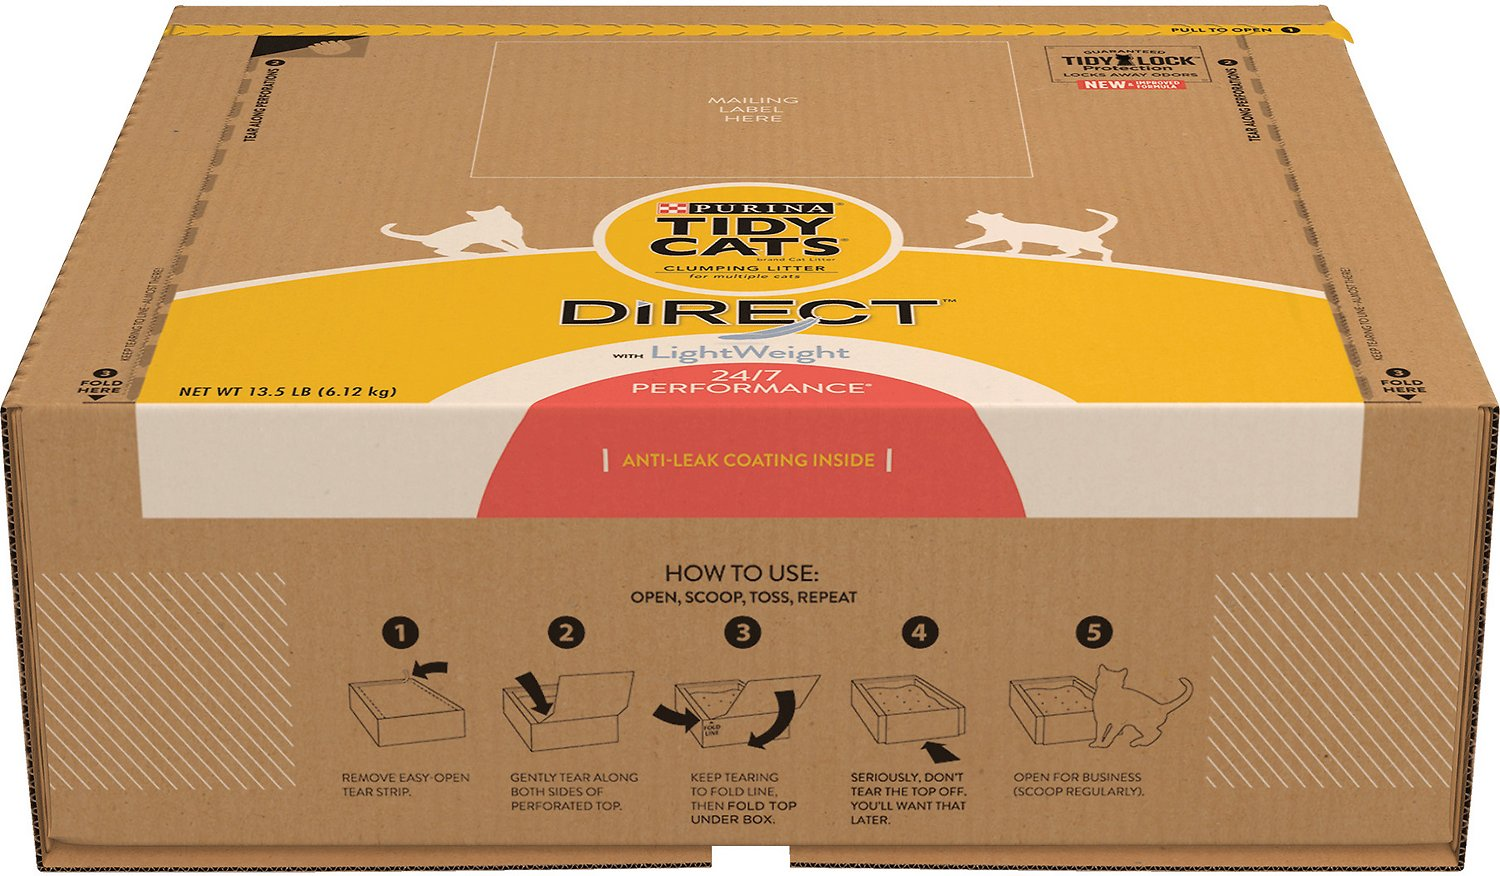 Tidy Cats Direct Disposable Litter Box With Lightweight